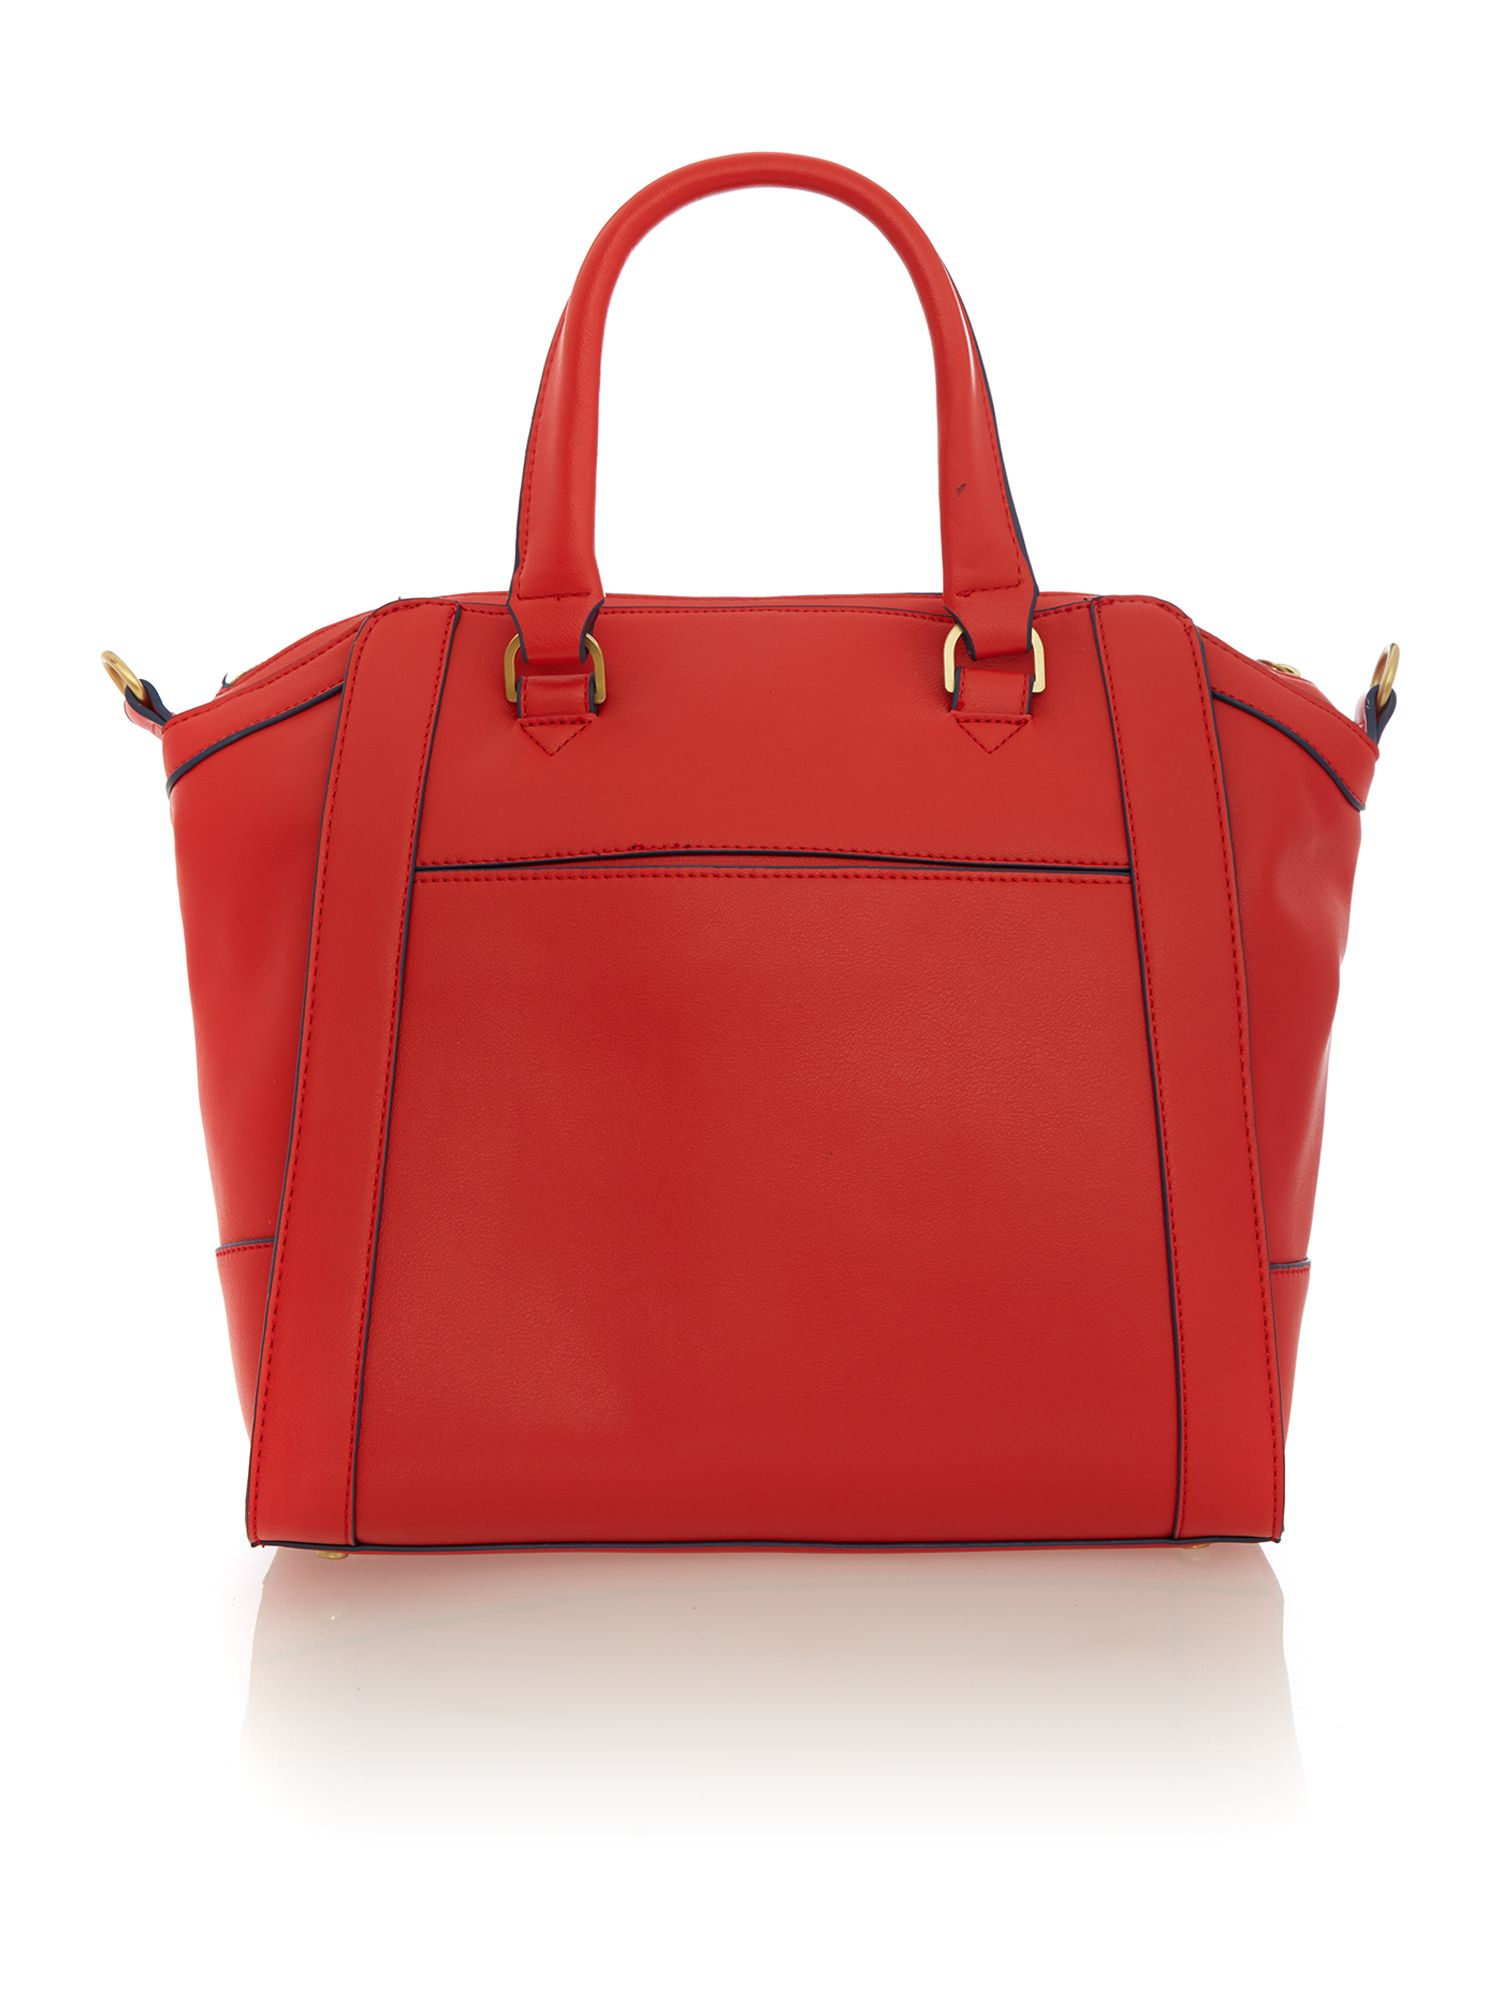 Kenzie red tote bag